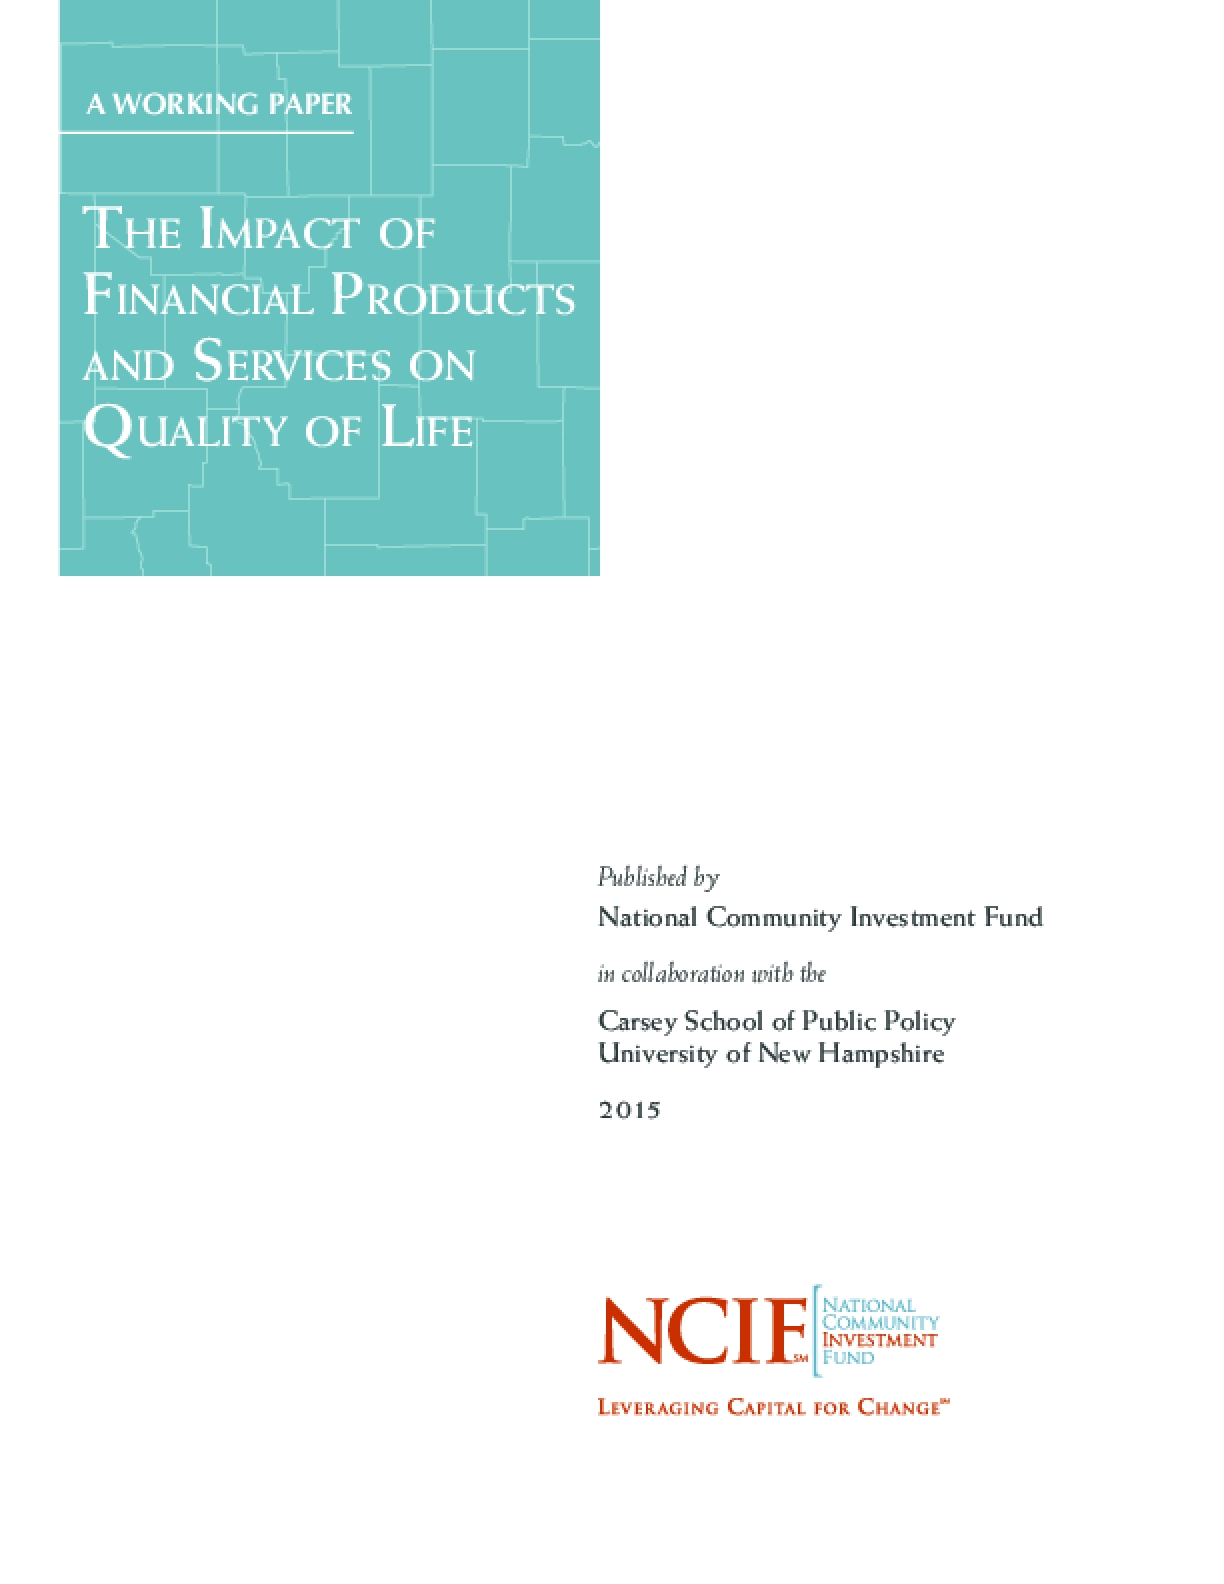 The Impact of Financial Products and Services on Quality of Life